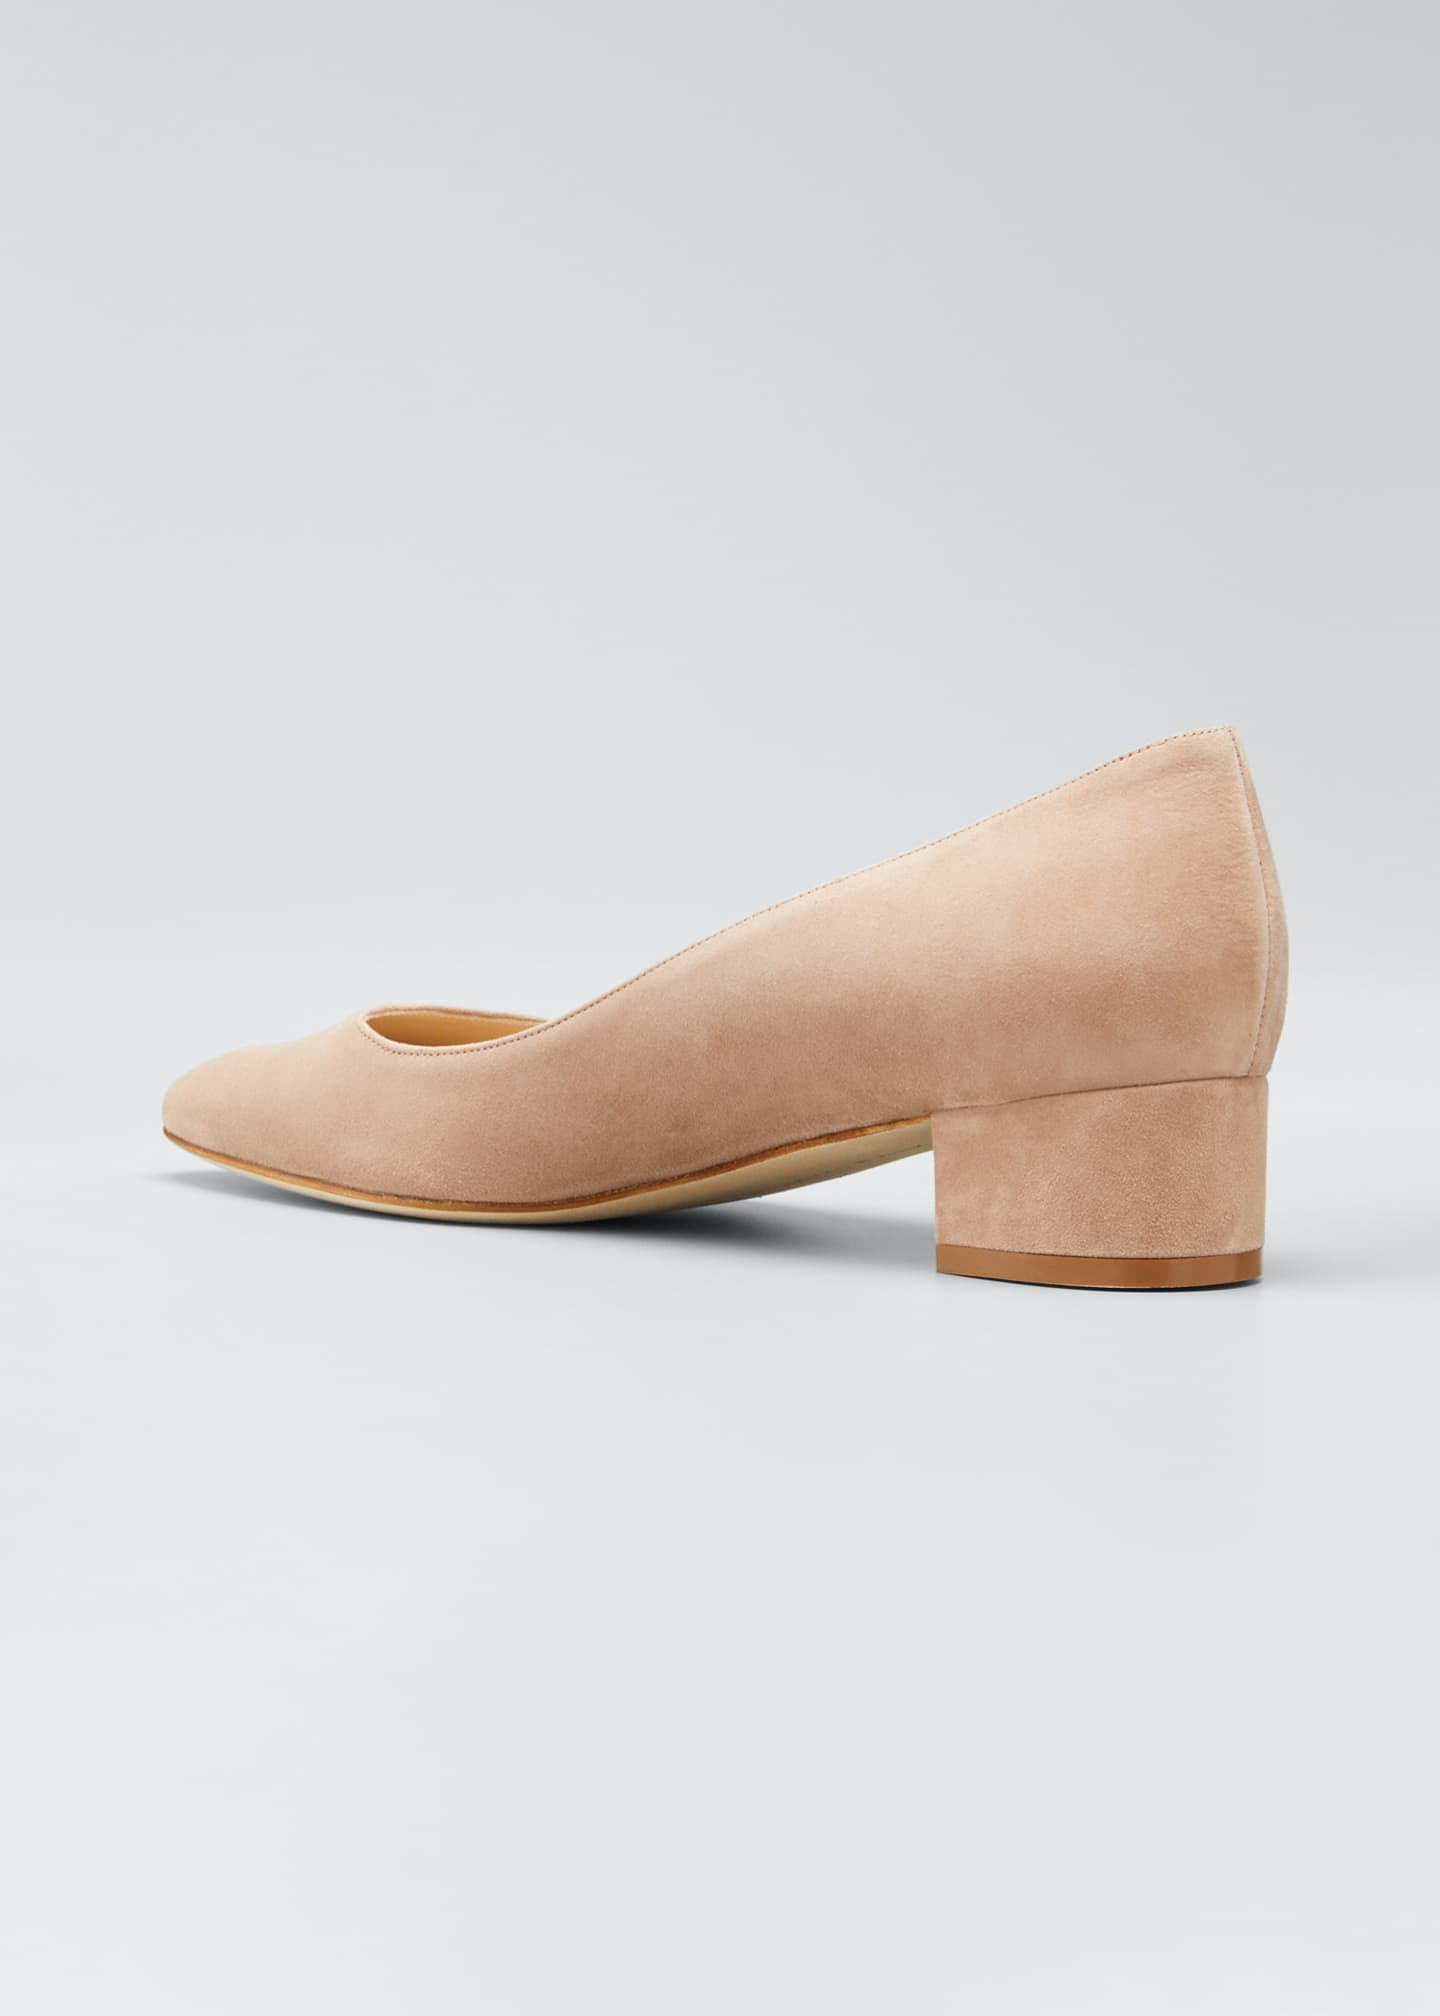 Image 4 of 5: Listony Suede Low-Heel Pumps